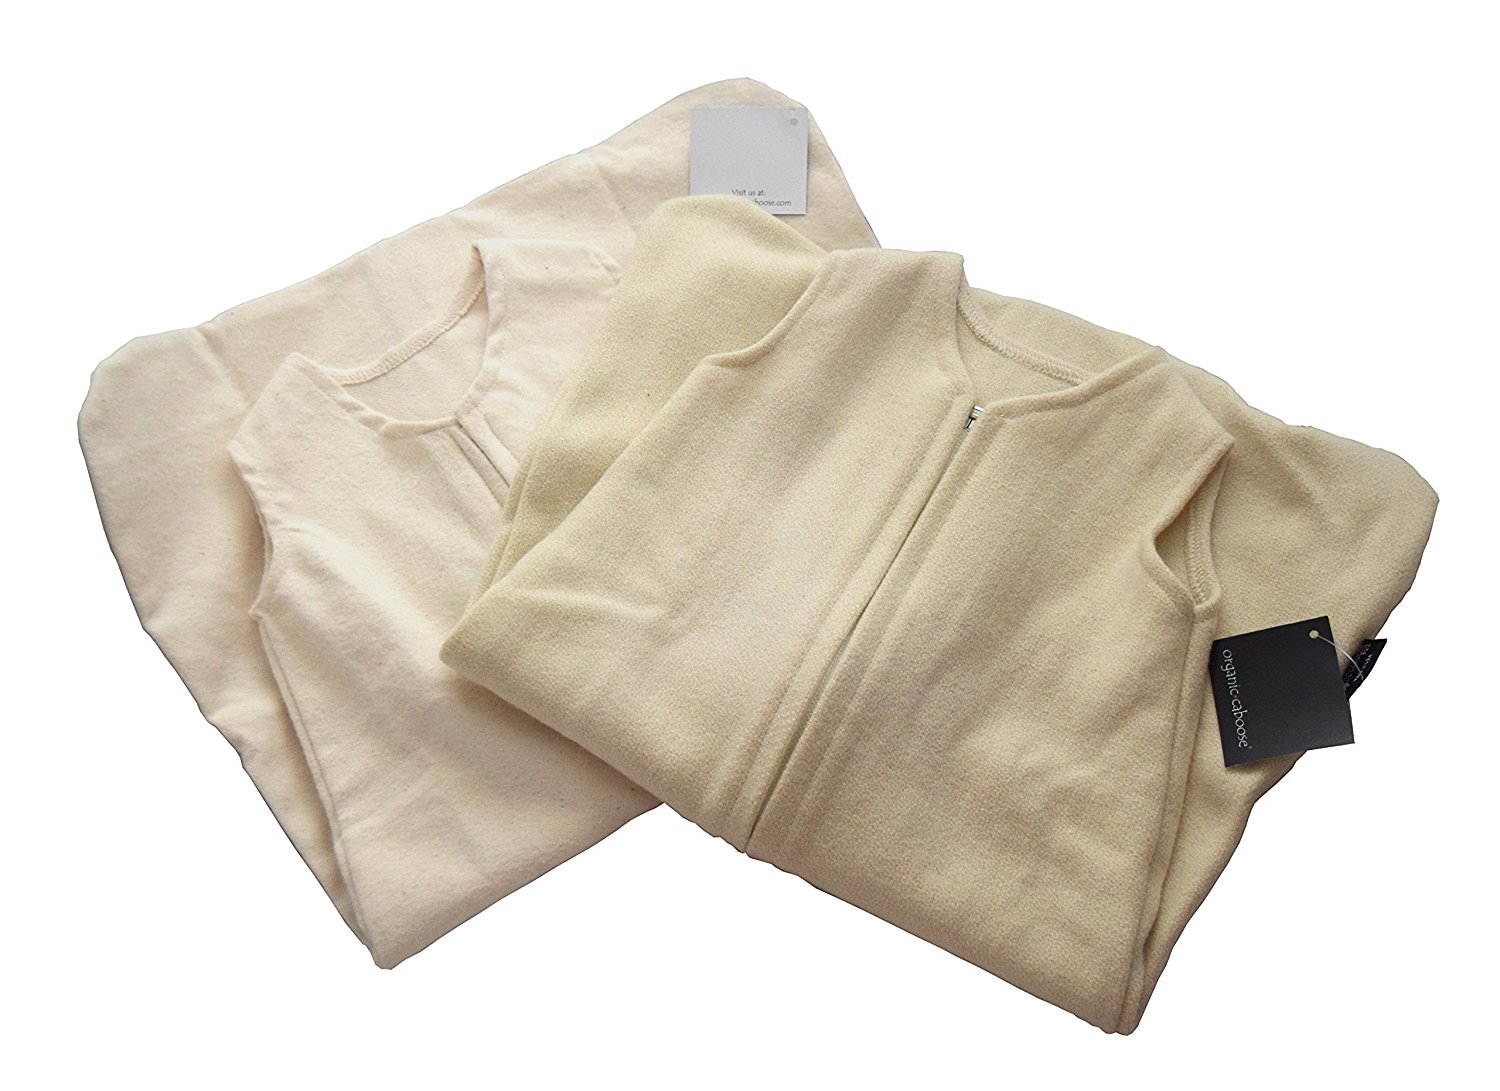 Organic Caboose Organic Sleep Sack - Cotton Flannel Available in Sizes 0-3 Months, 3-6 Months, and 6-9 Months